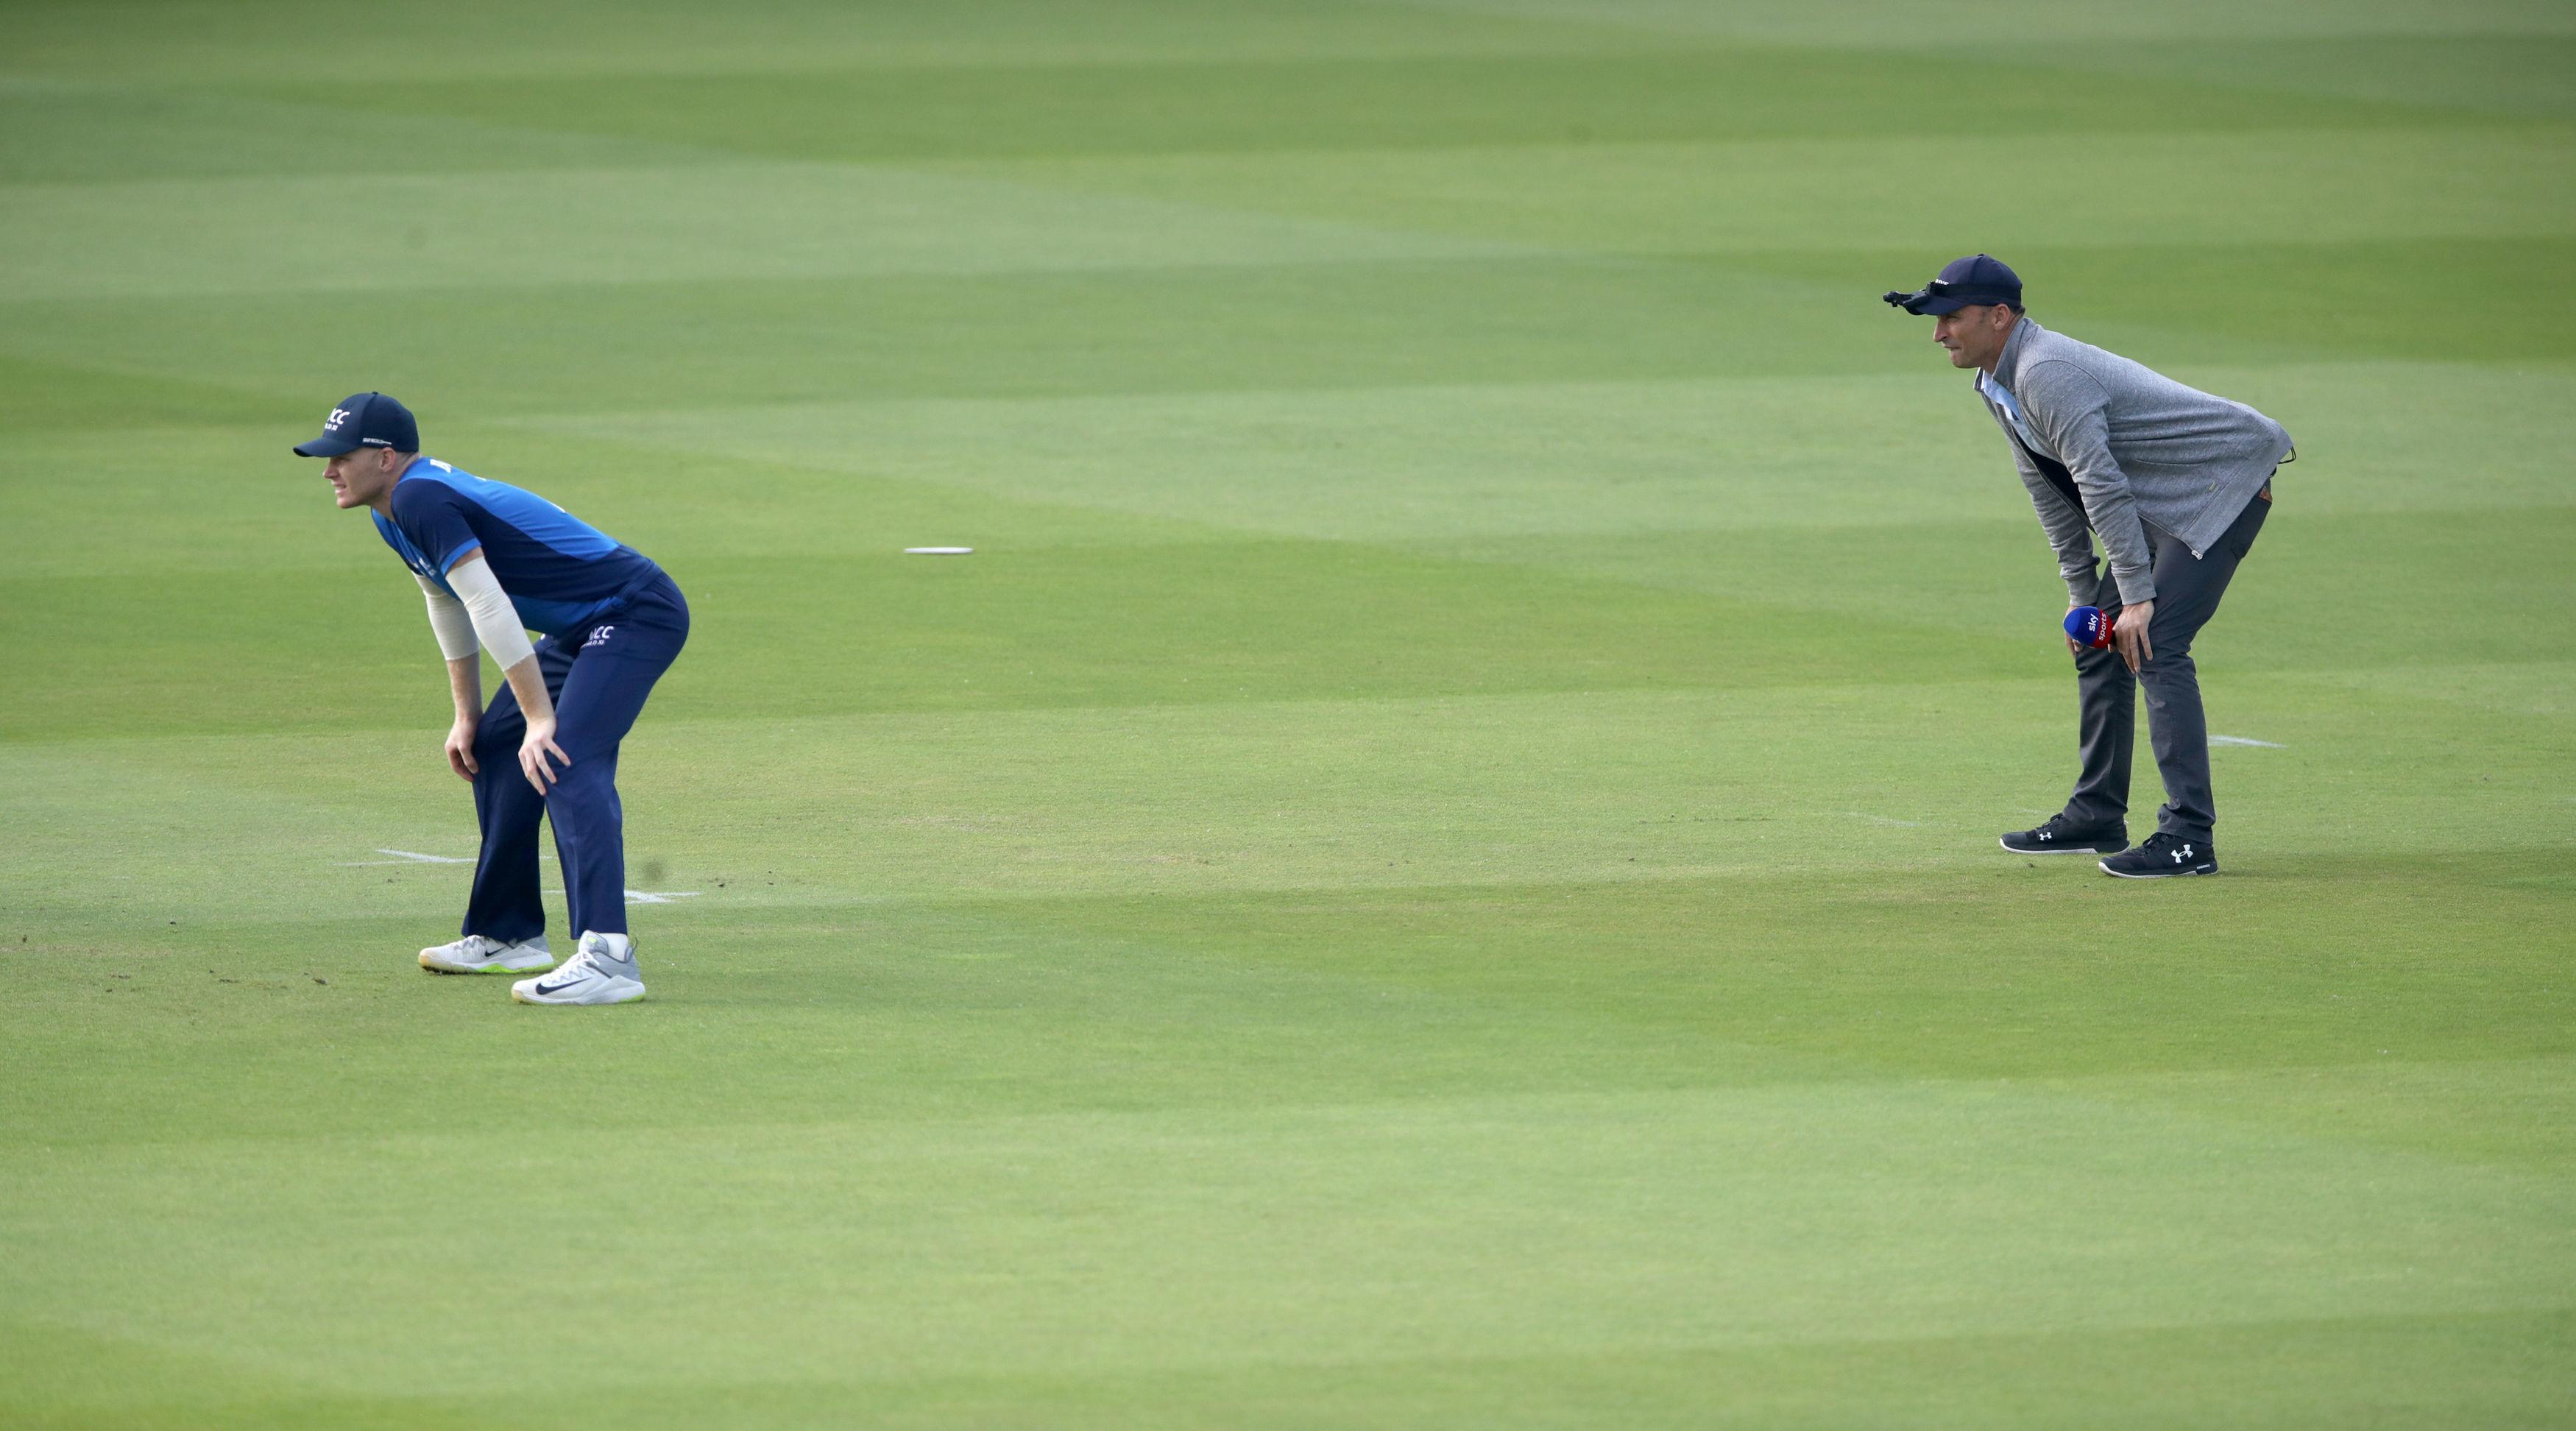 Sky Sports commentator Nasser Hussain joined the players on the field with a camera on his cap